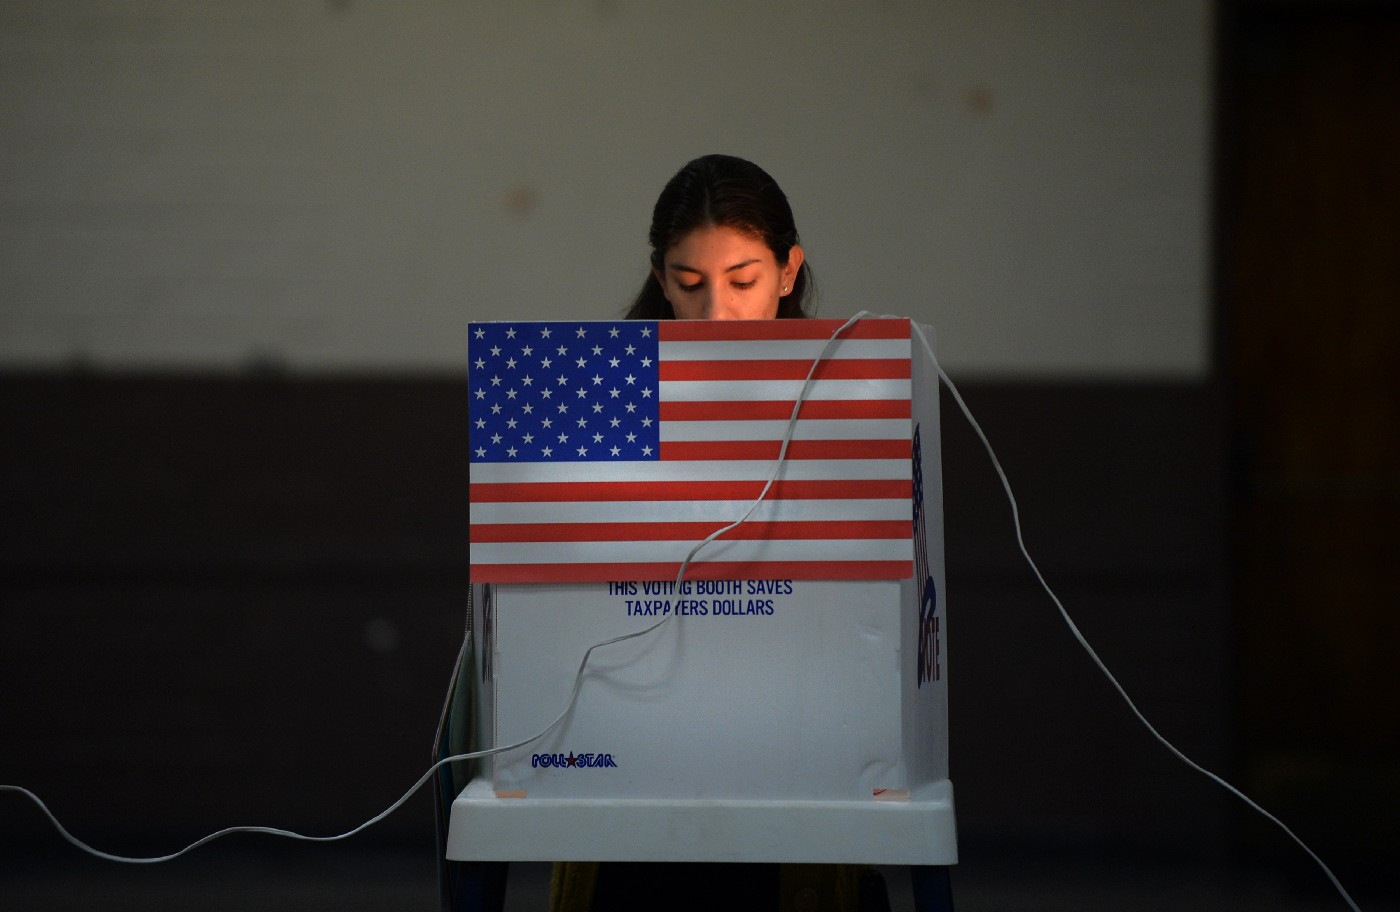 Latina woman voting at a poll in California. The booth has an American flag on it.